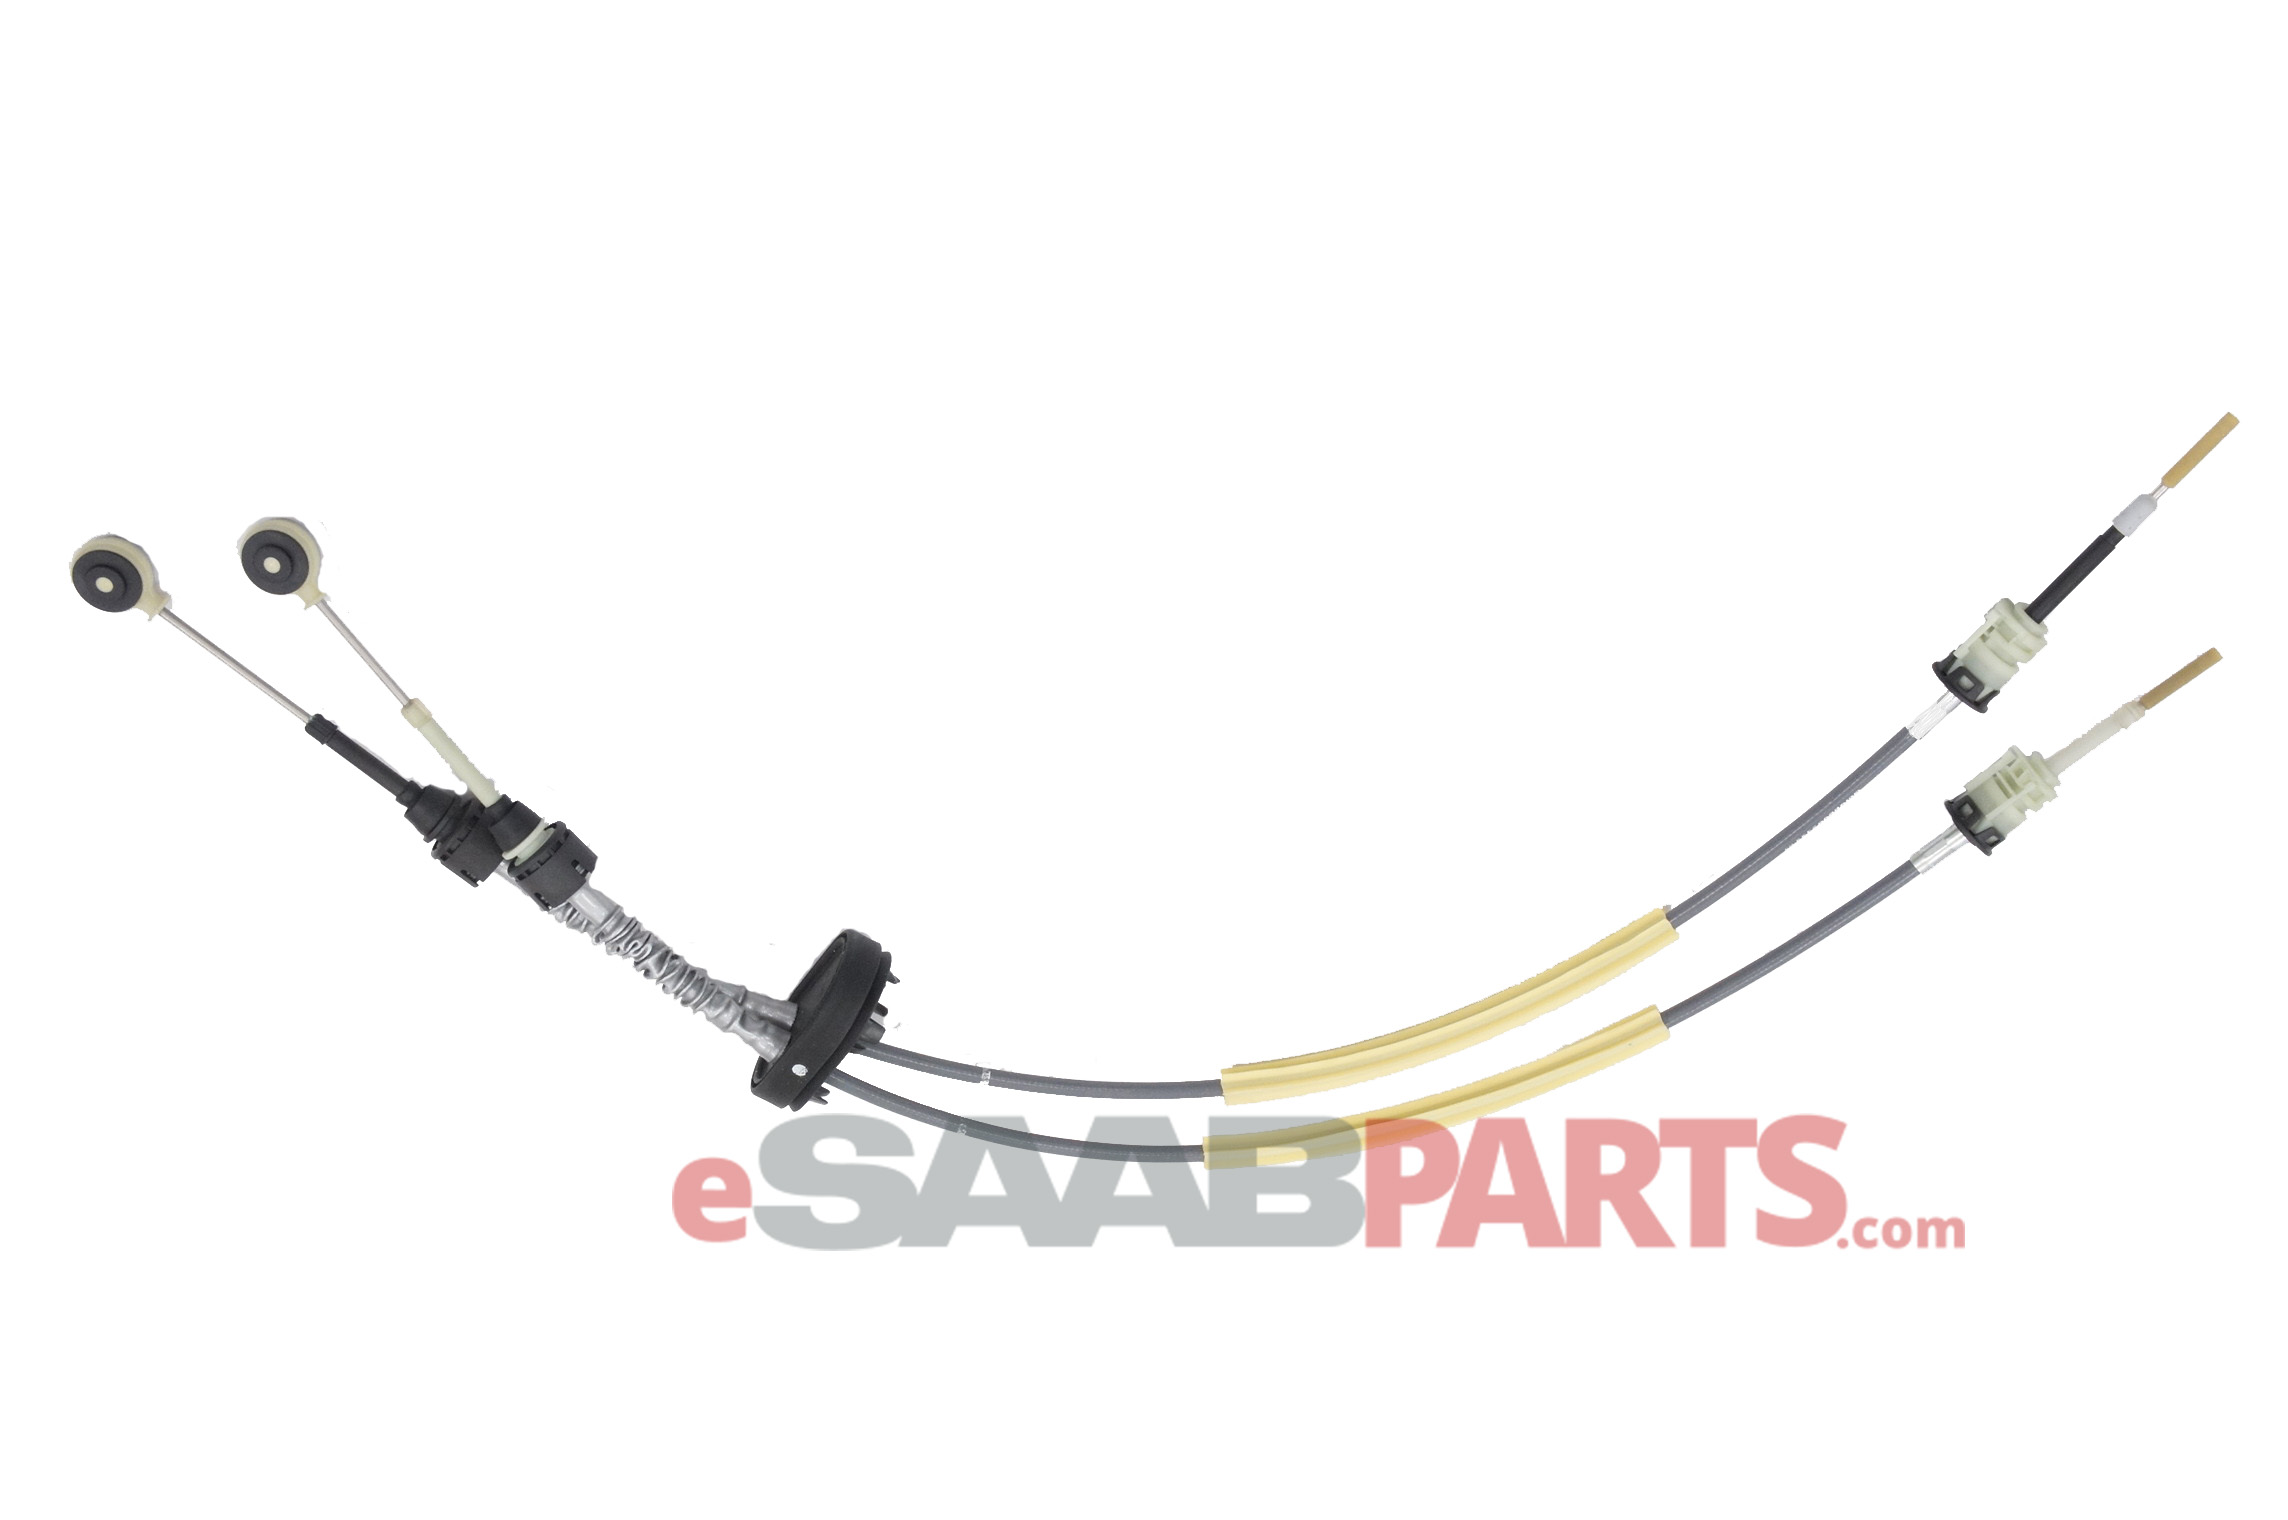 [55559077] SAAB Gear Shifter Cable Linkage (2006-2009 MT 6